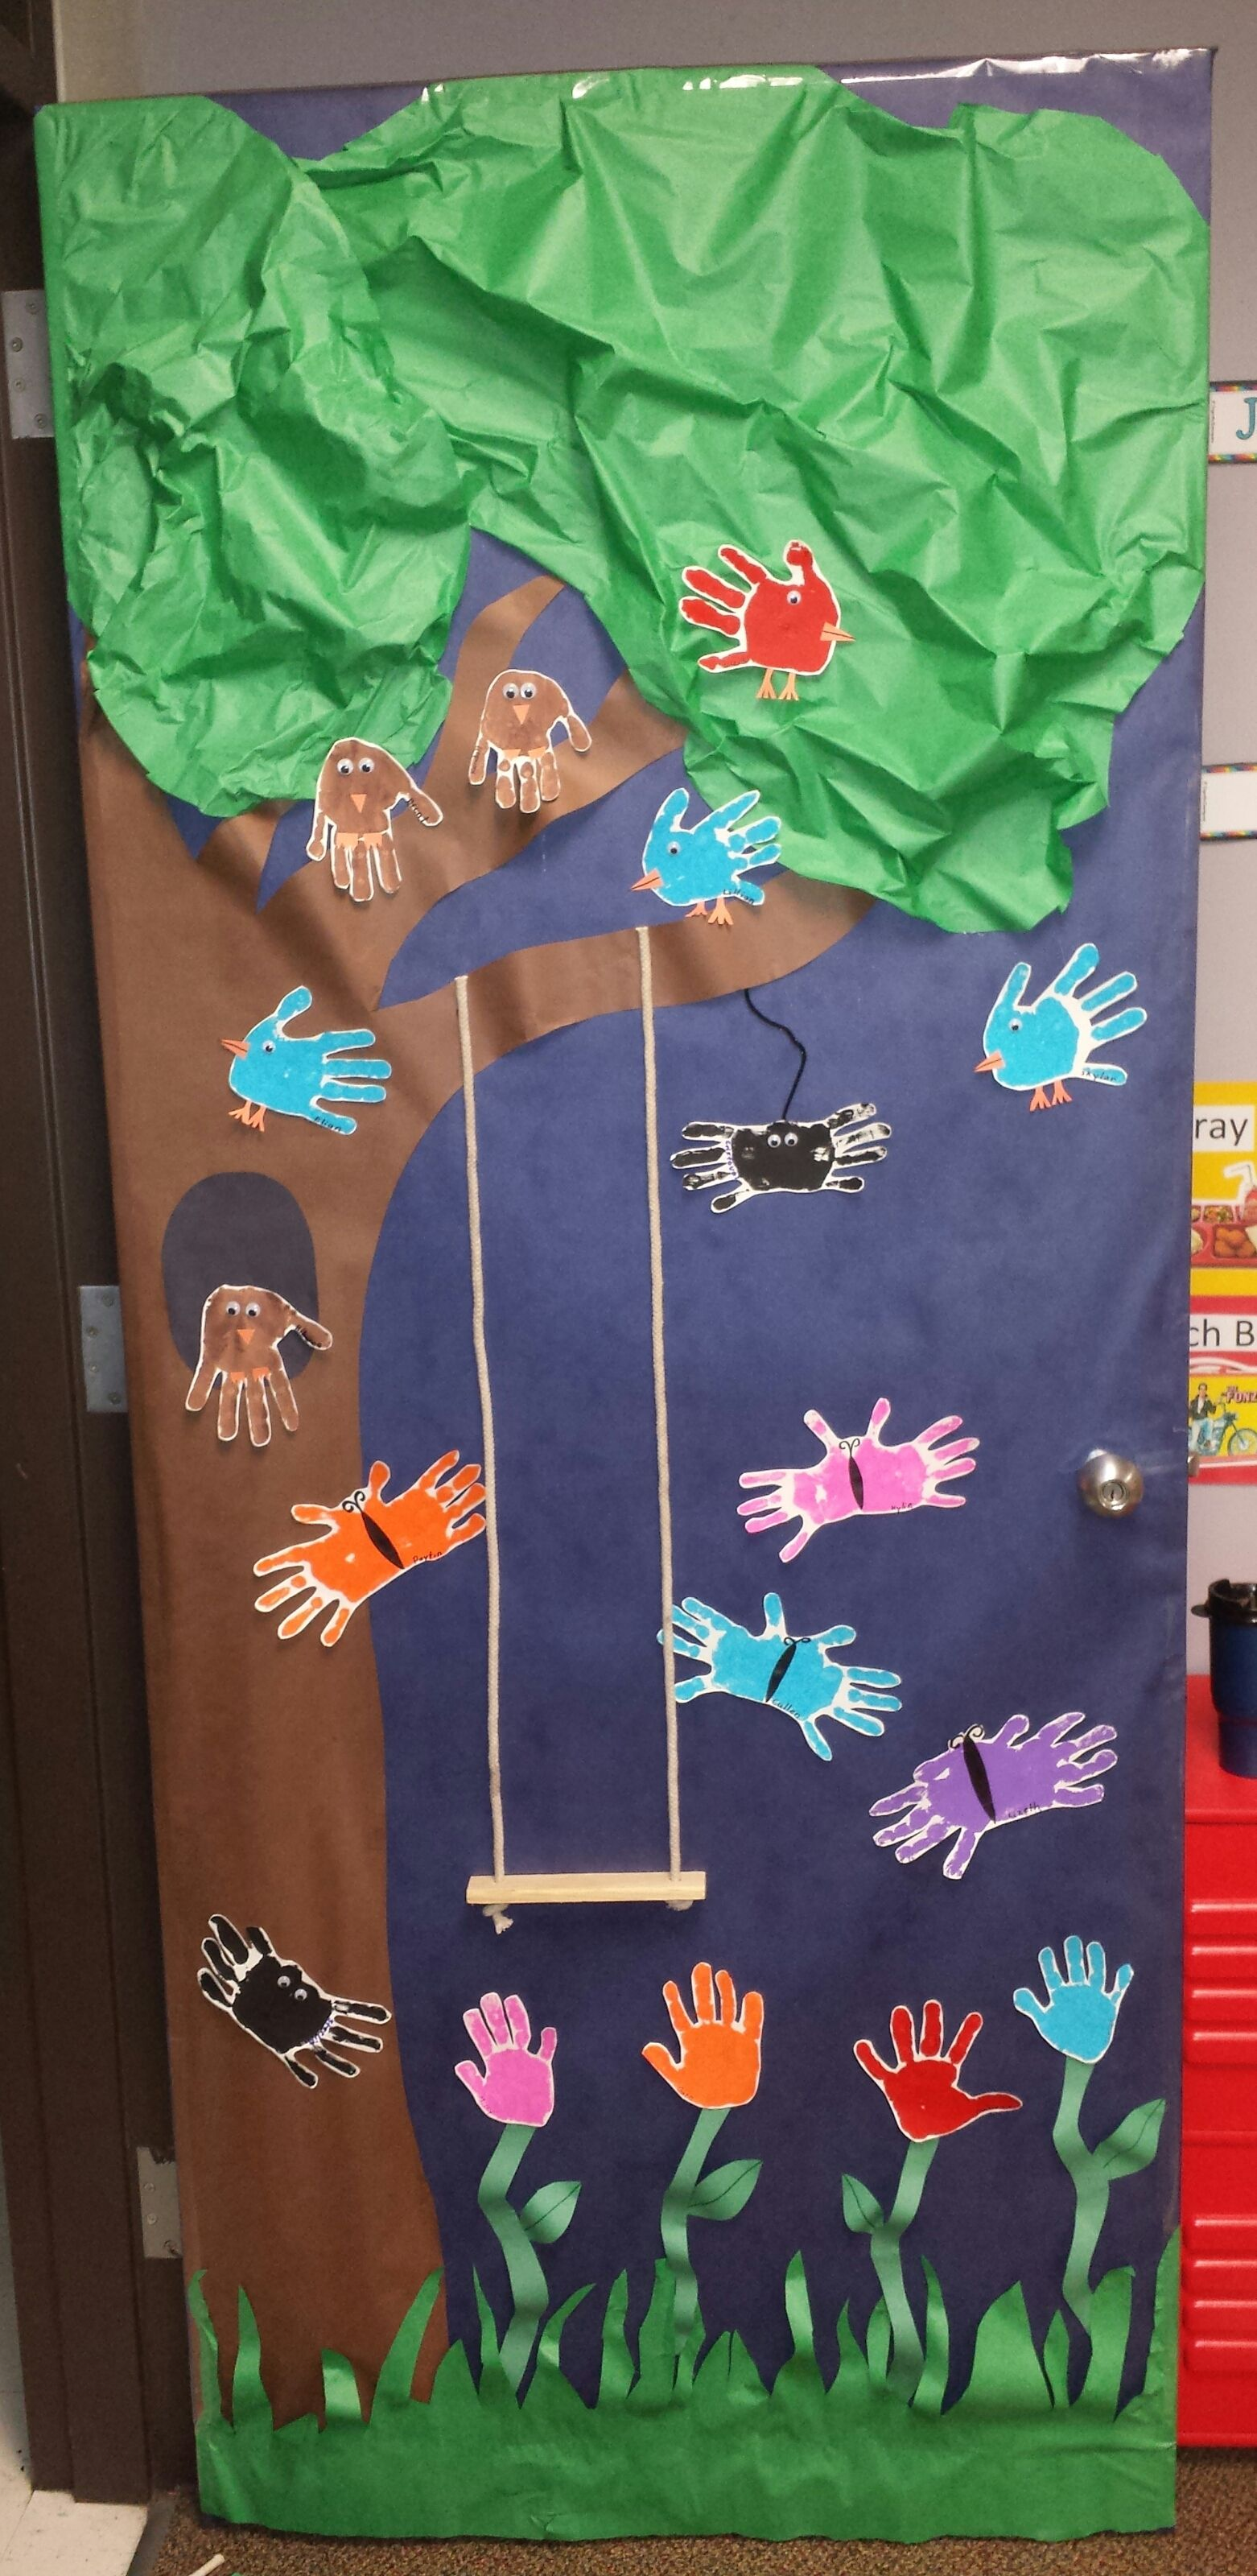 Swing into spring classroom door decoration little learners pinterest classroom door - Spring door decorations for school ...